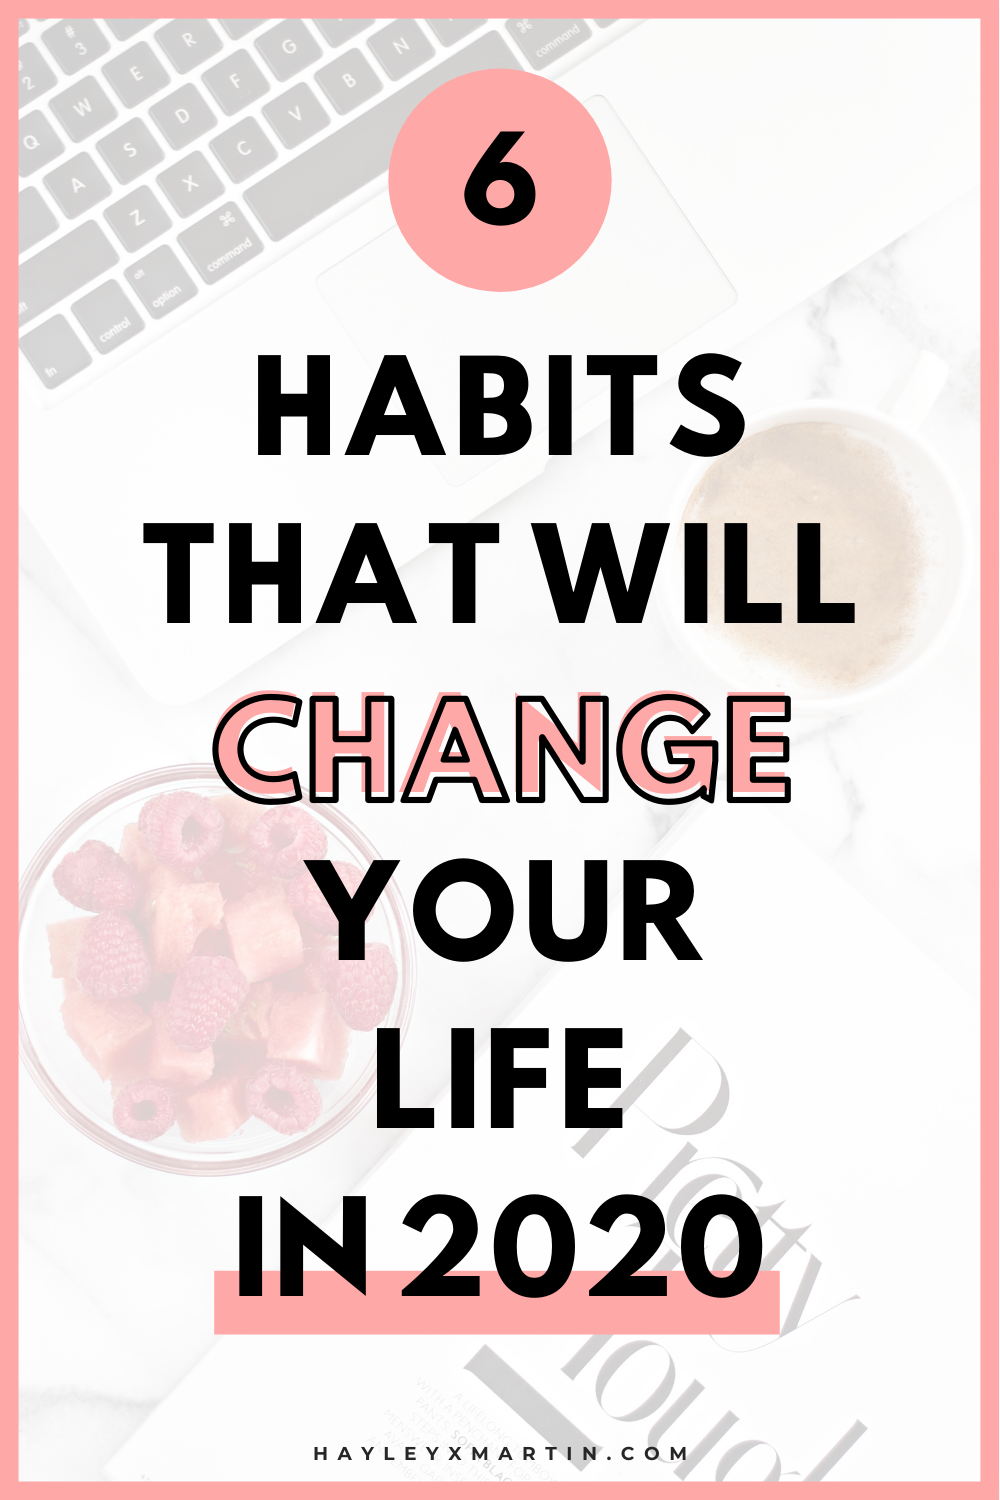 6 HABITS THAT WILL CHANGE YOUR LIFE IN 2020 | HAYLEYXMARTIN